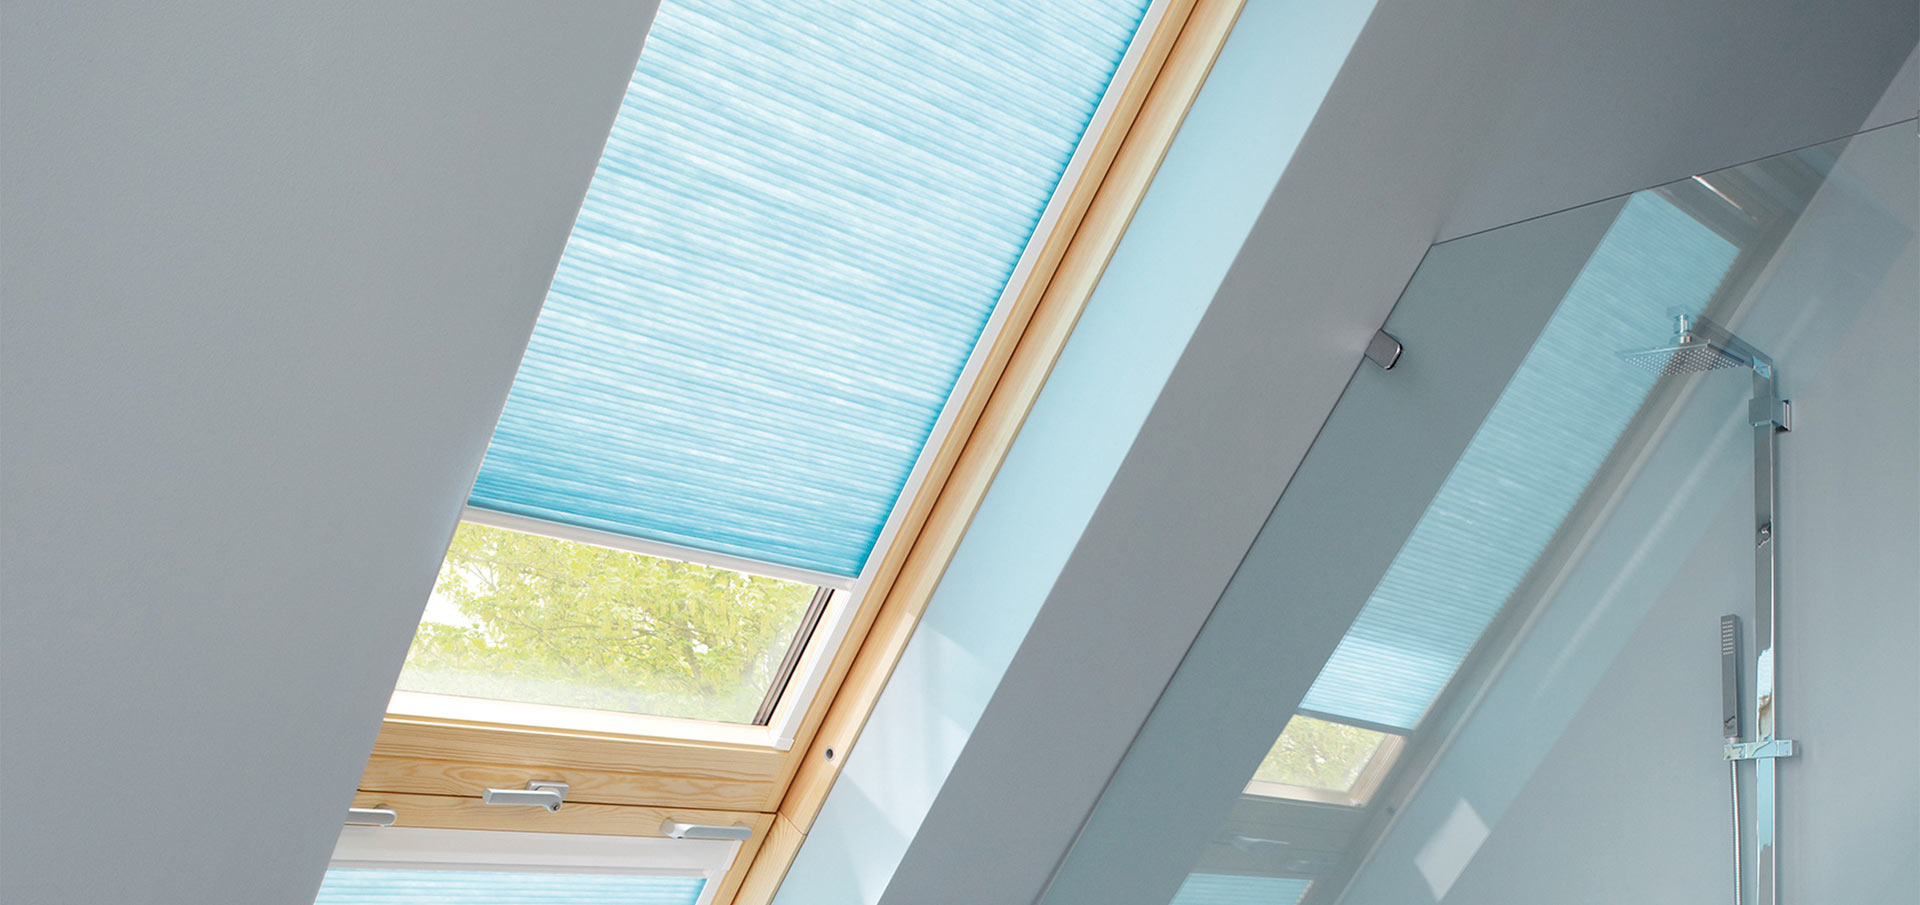 Roof blinds